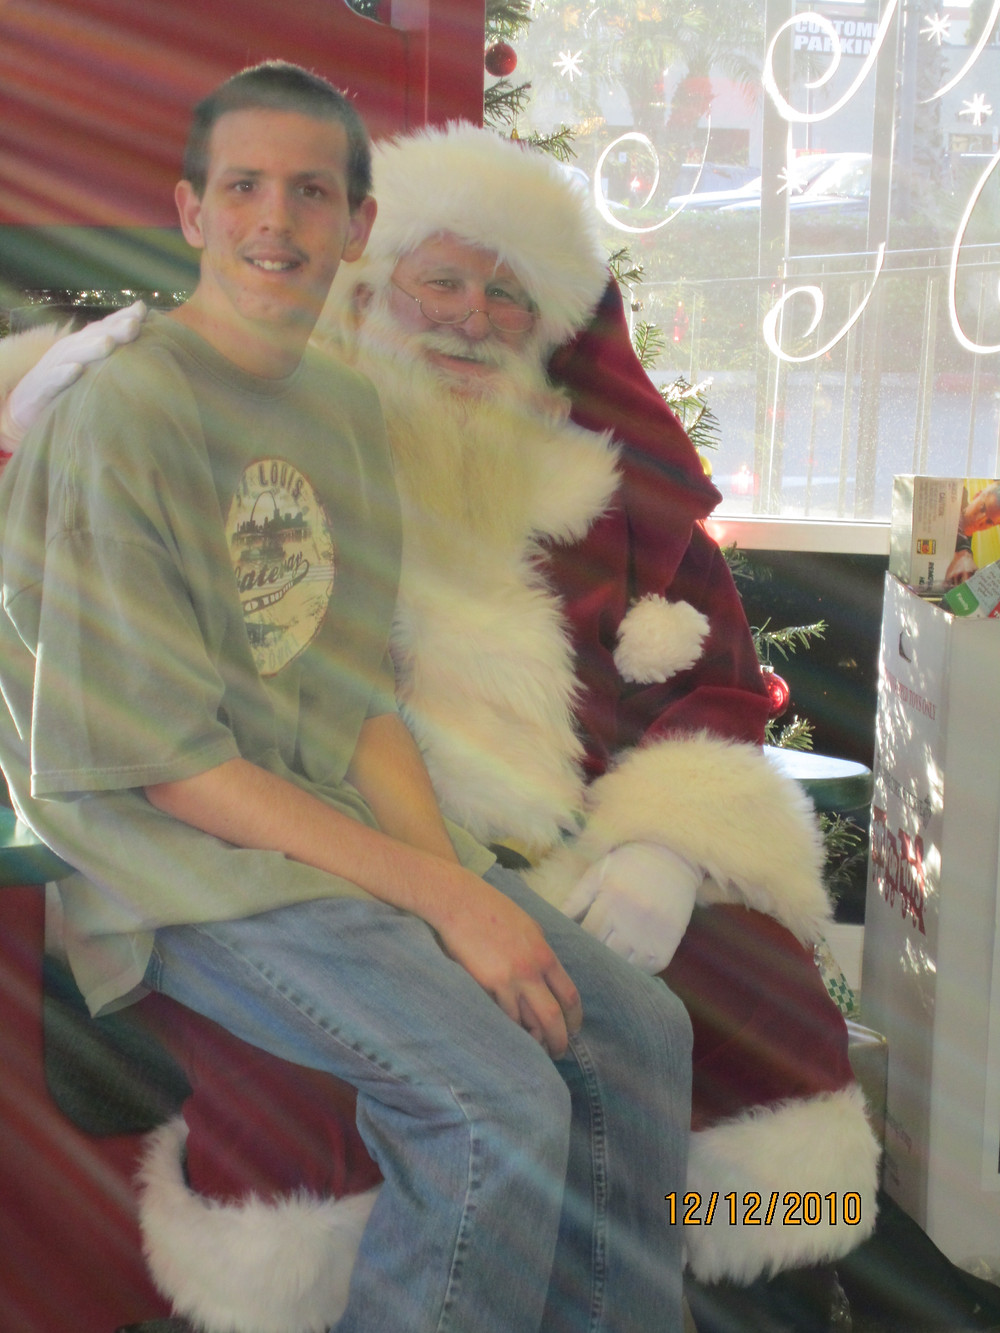 Teenage boy sitting on Santa's lap